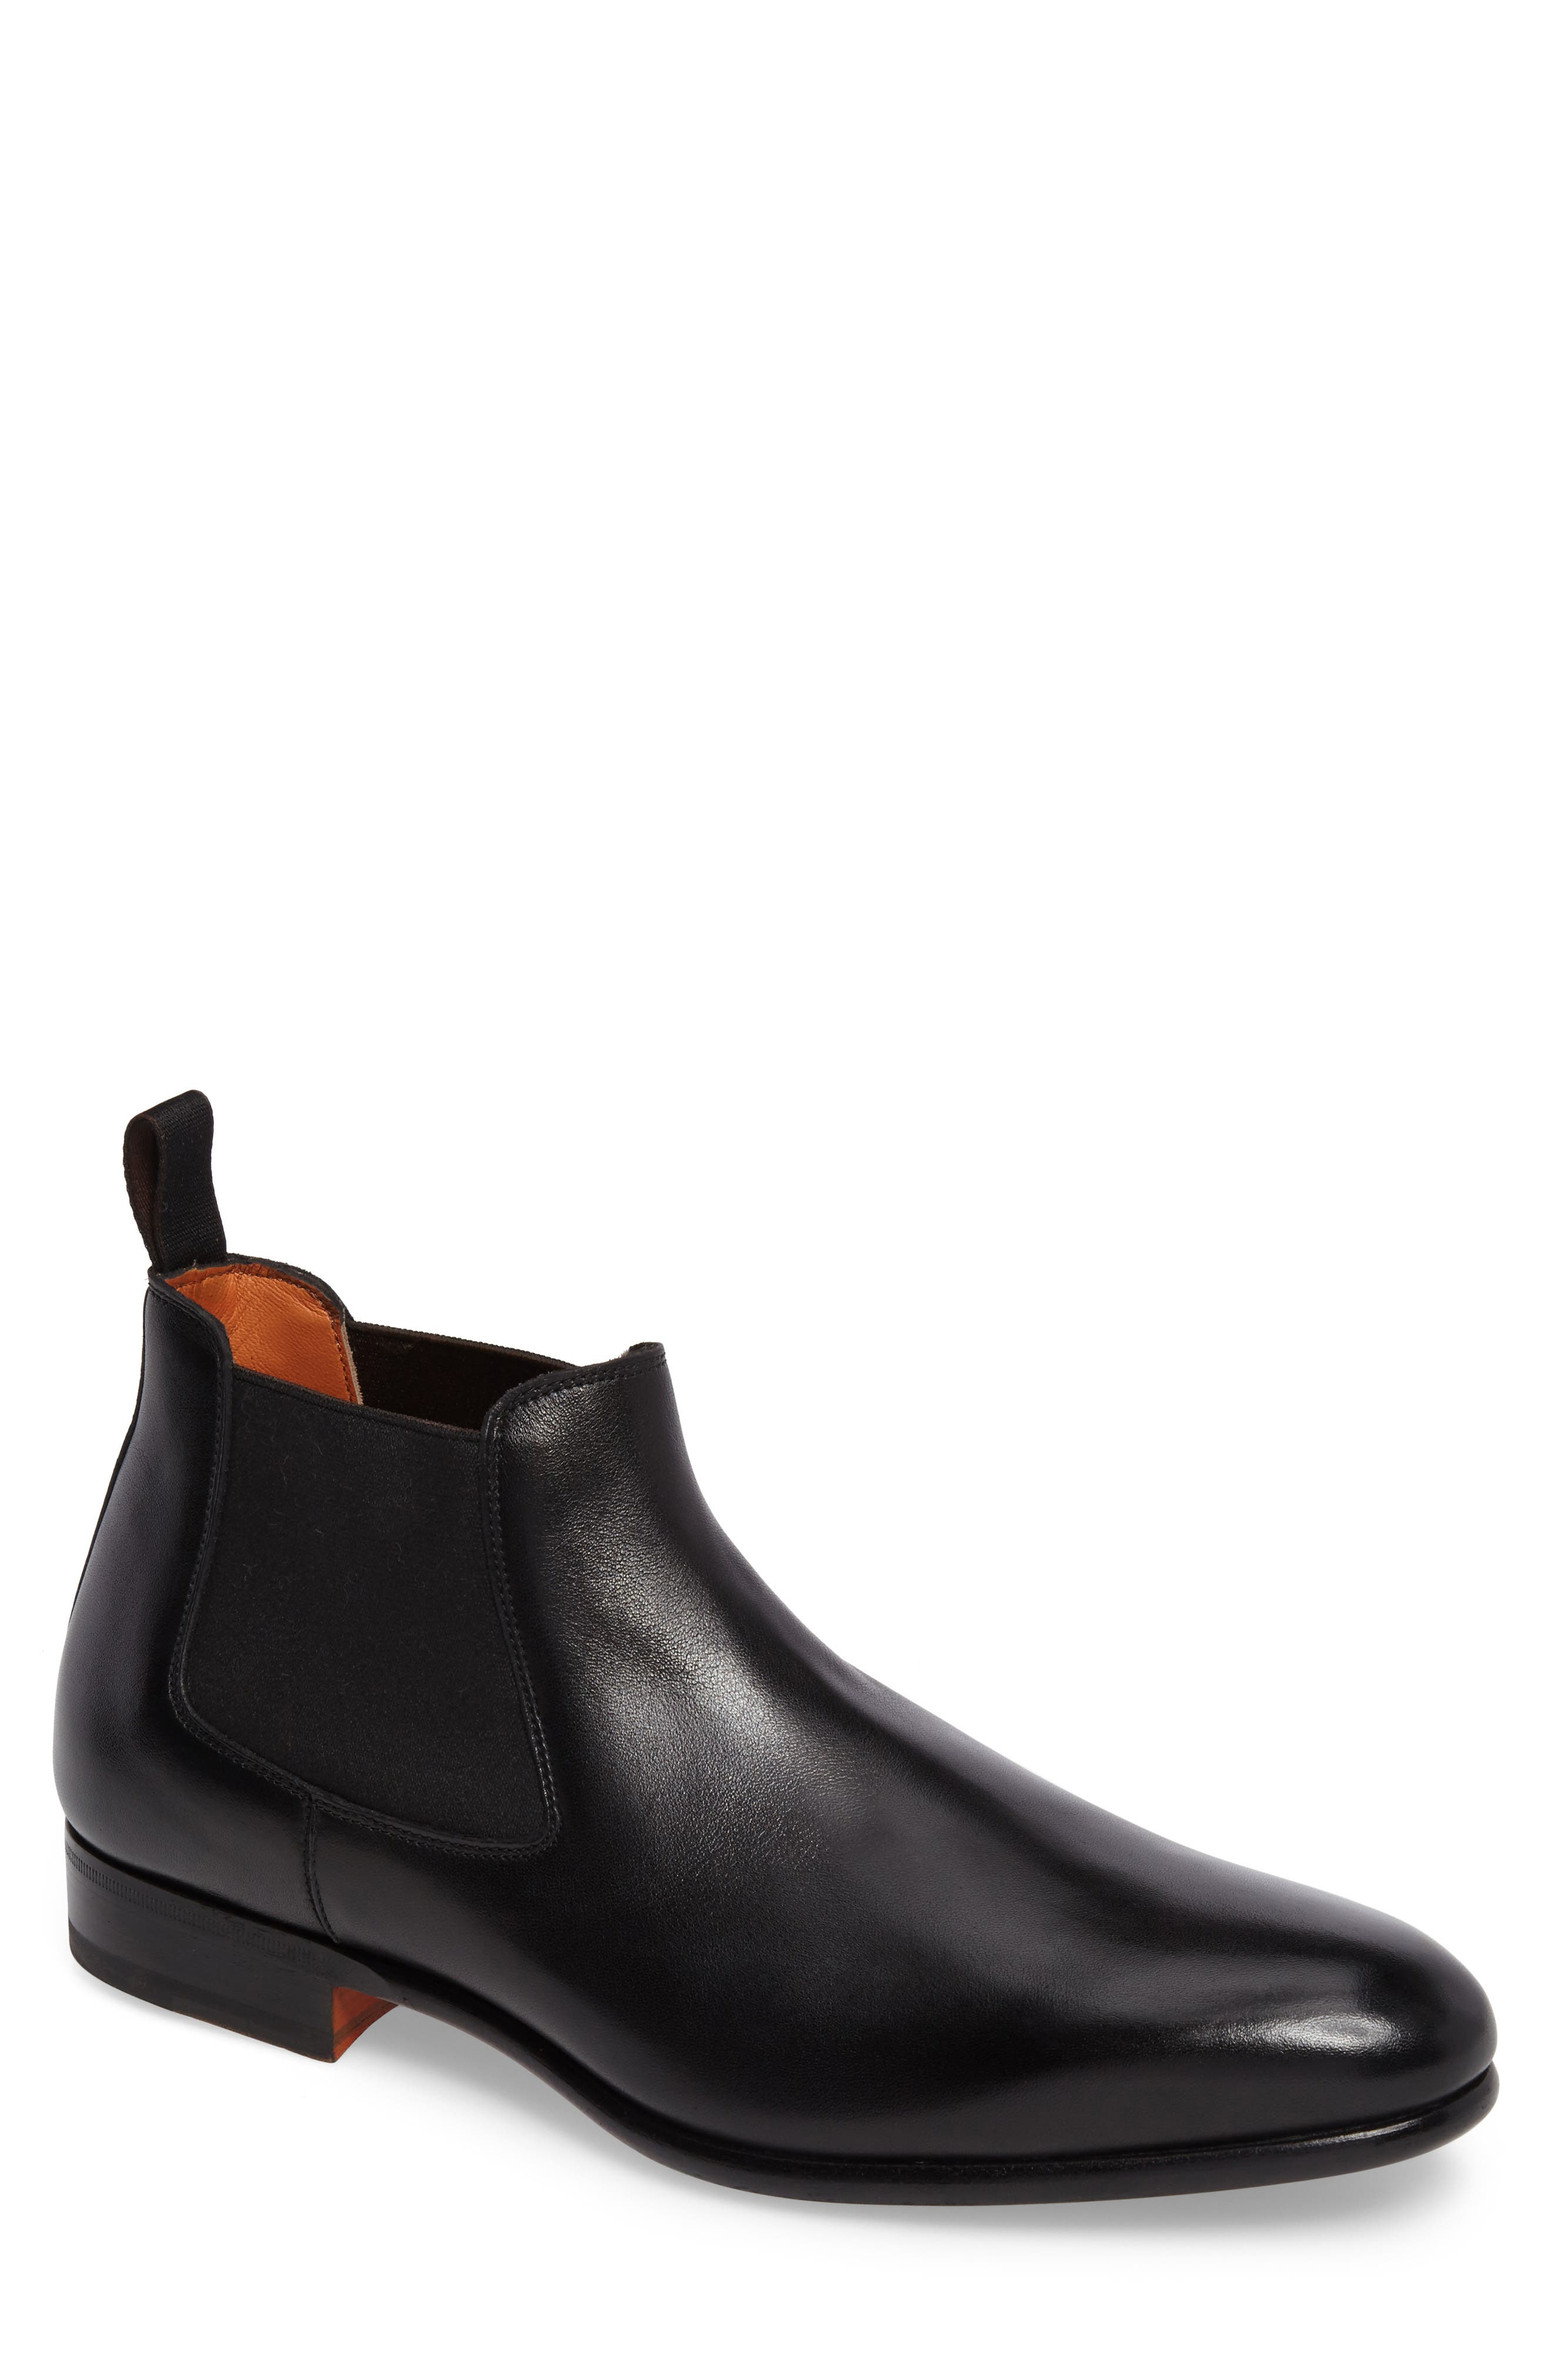 Gunther Chelsea Boot,                         Main,                         color, Black Leather